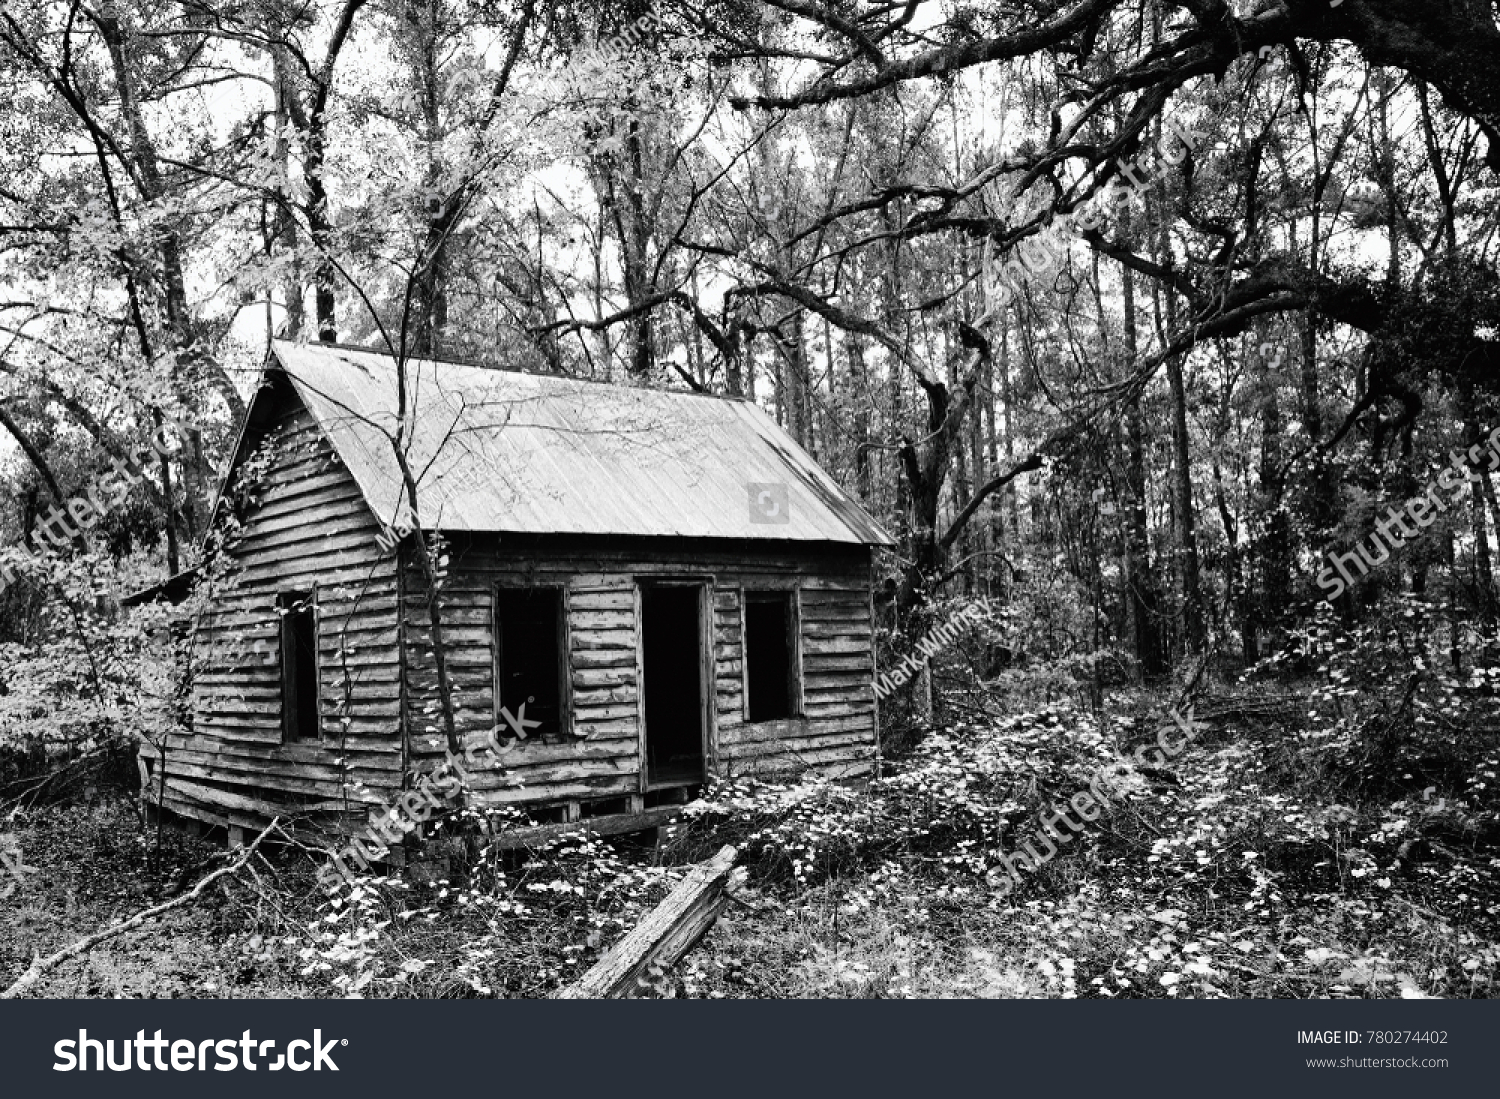 stock-photo-creepy-abandoned-house-deep-